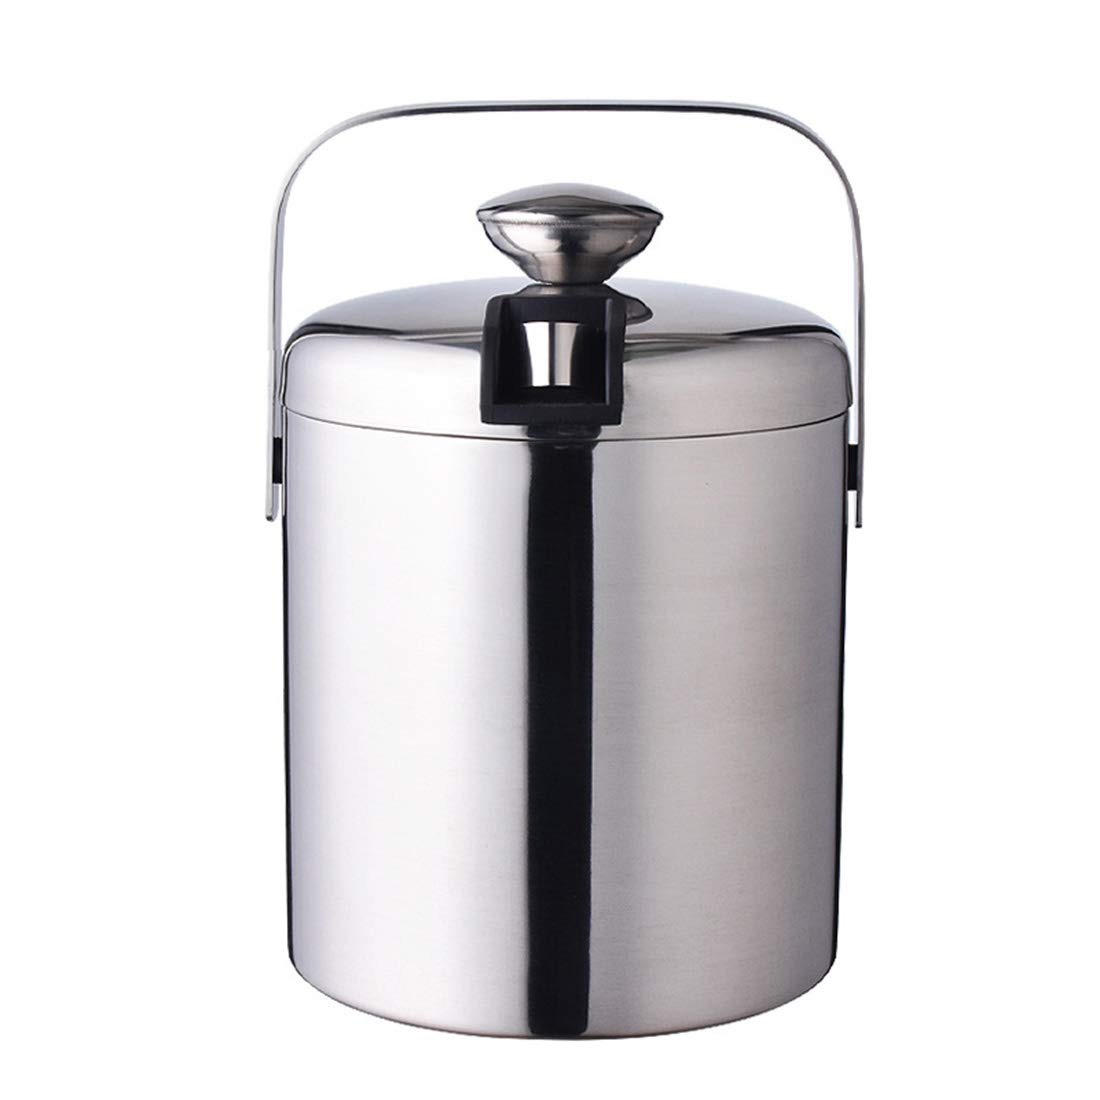 Enerhu 1300ML Ice Bucket for Parties Insulated with Lid Stainless Steel with Handle